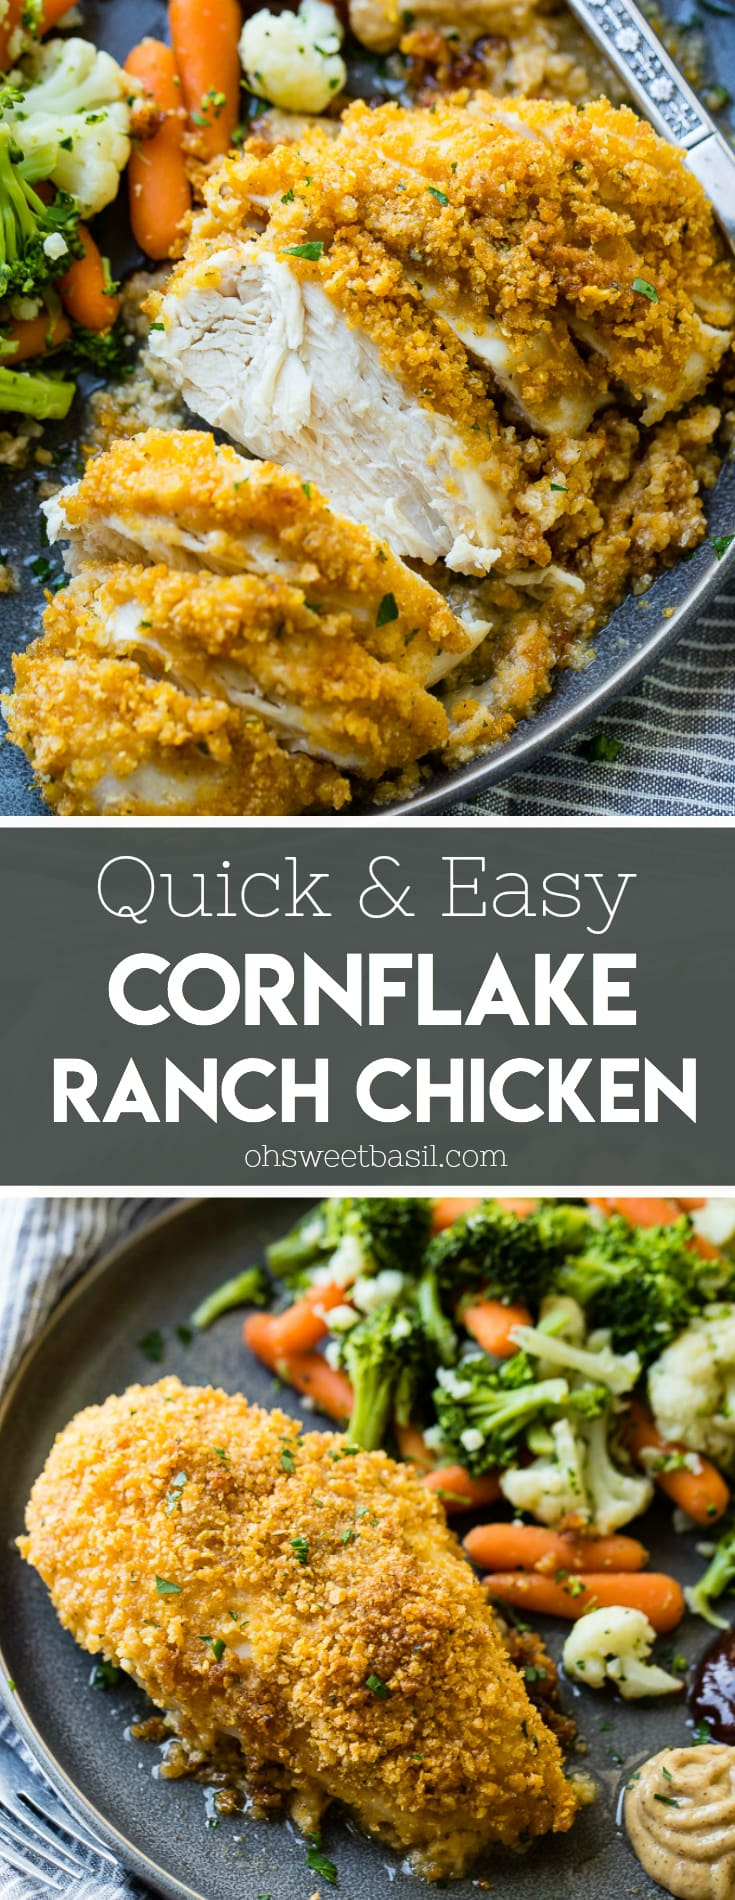 grey plate full of steamed veggies and golden, baked quick and easy cornflake ranch chicken recipe which has been sliced into pieces of chicken